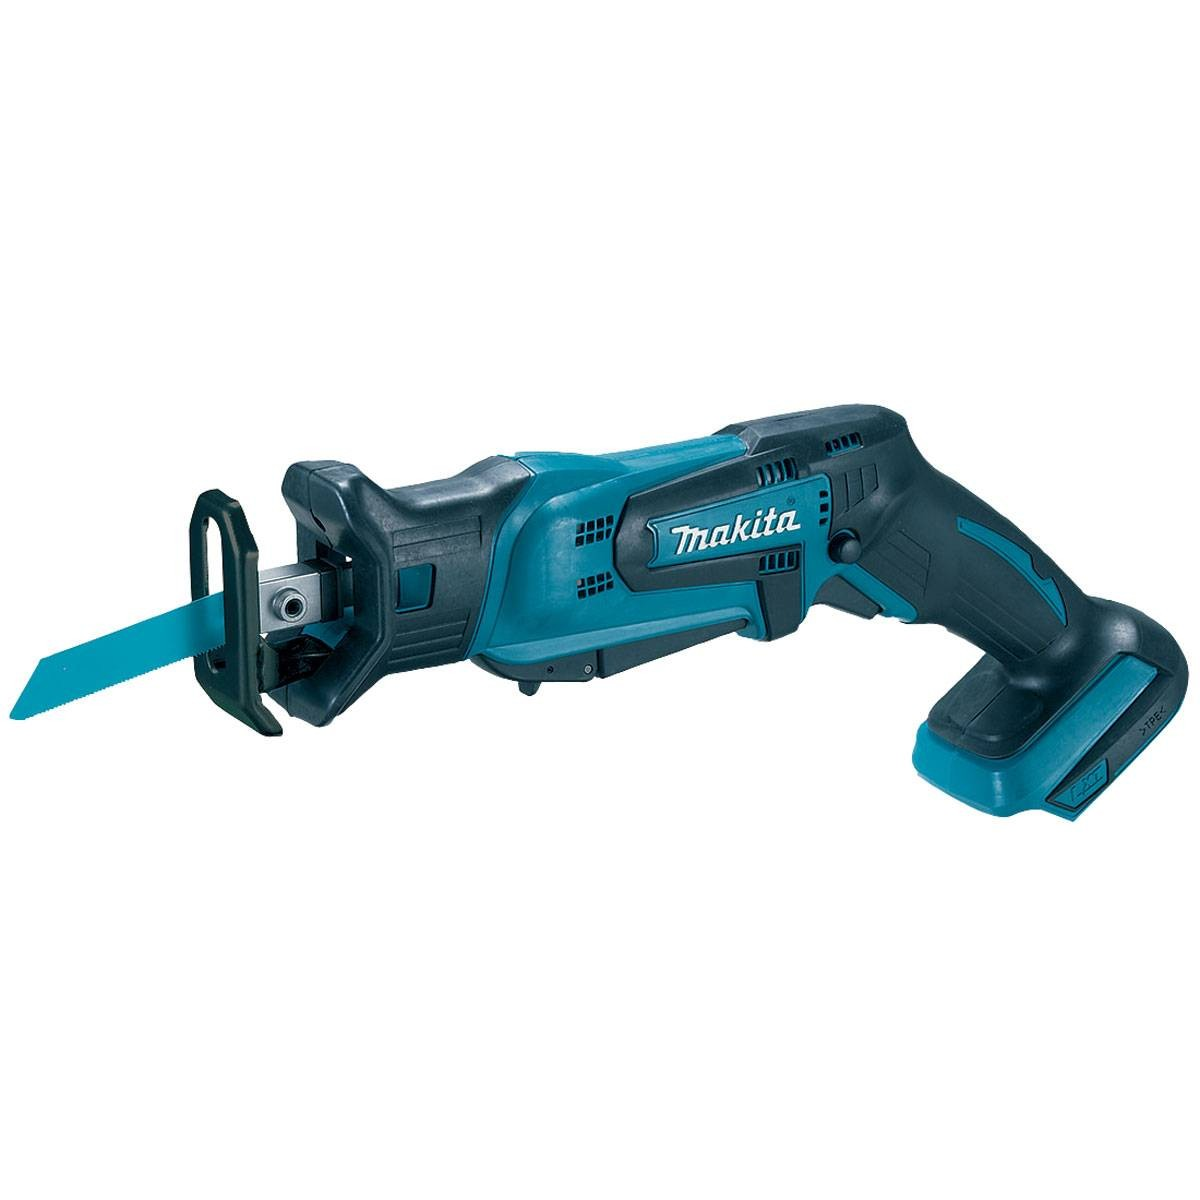 Makita DJR185Z 18v Cordless Mini Reciprocating Saw Body Only